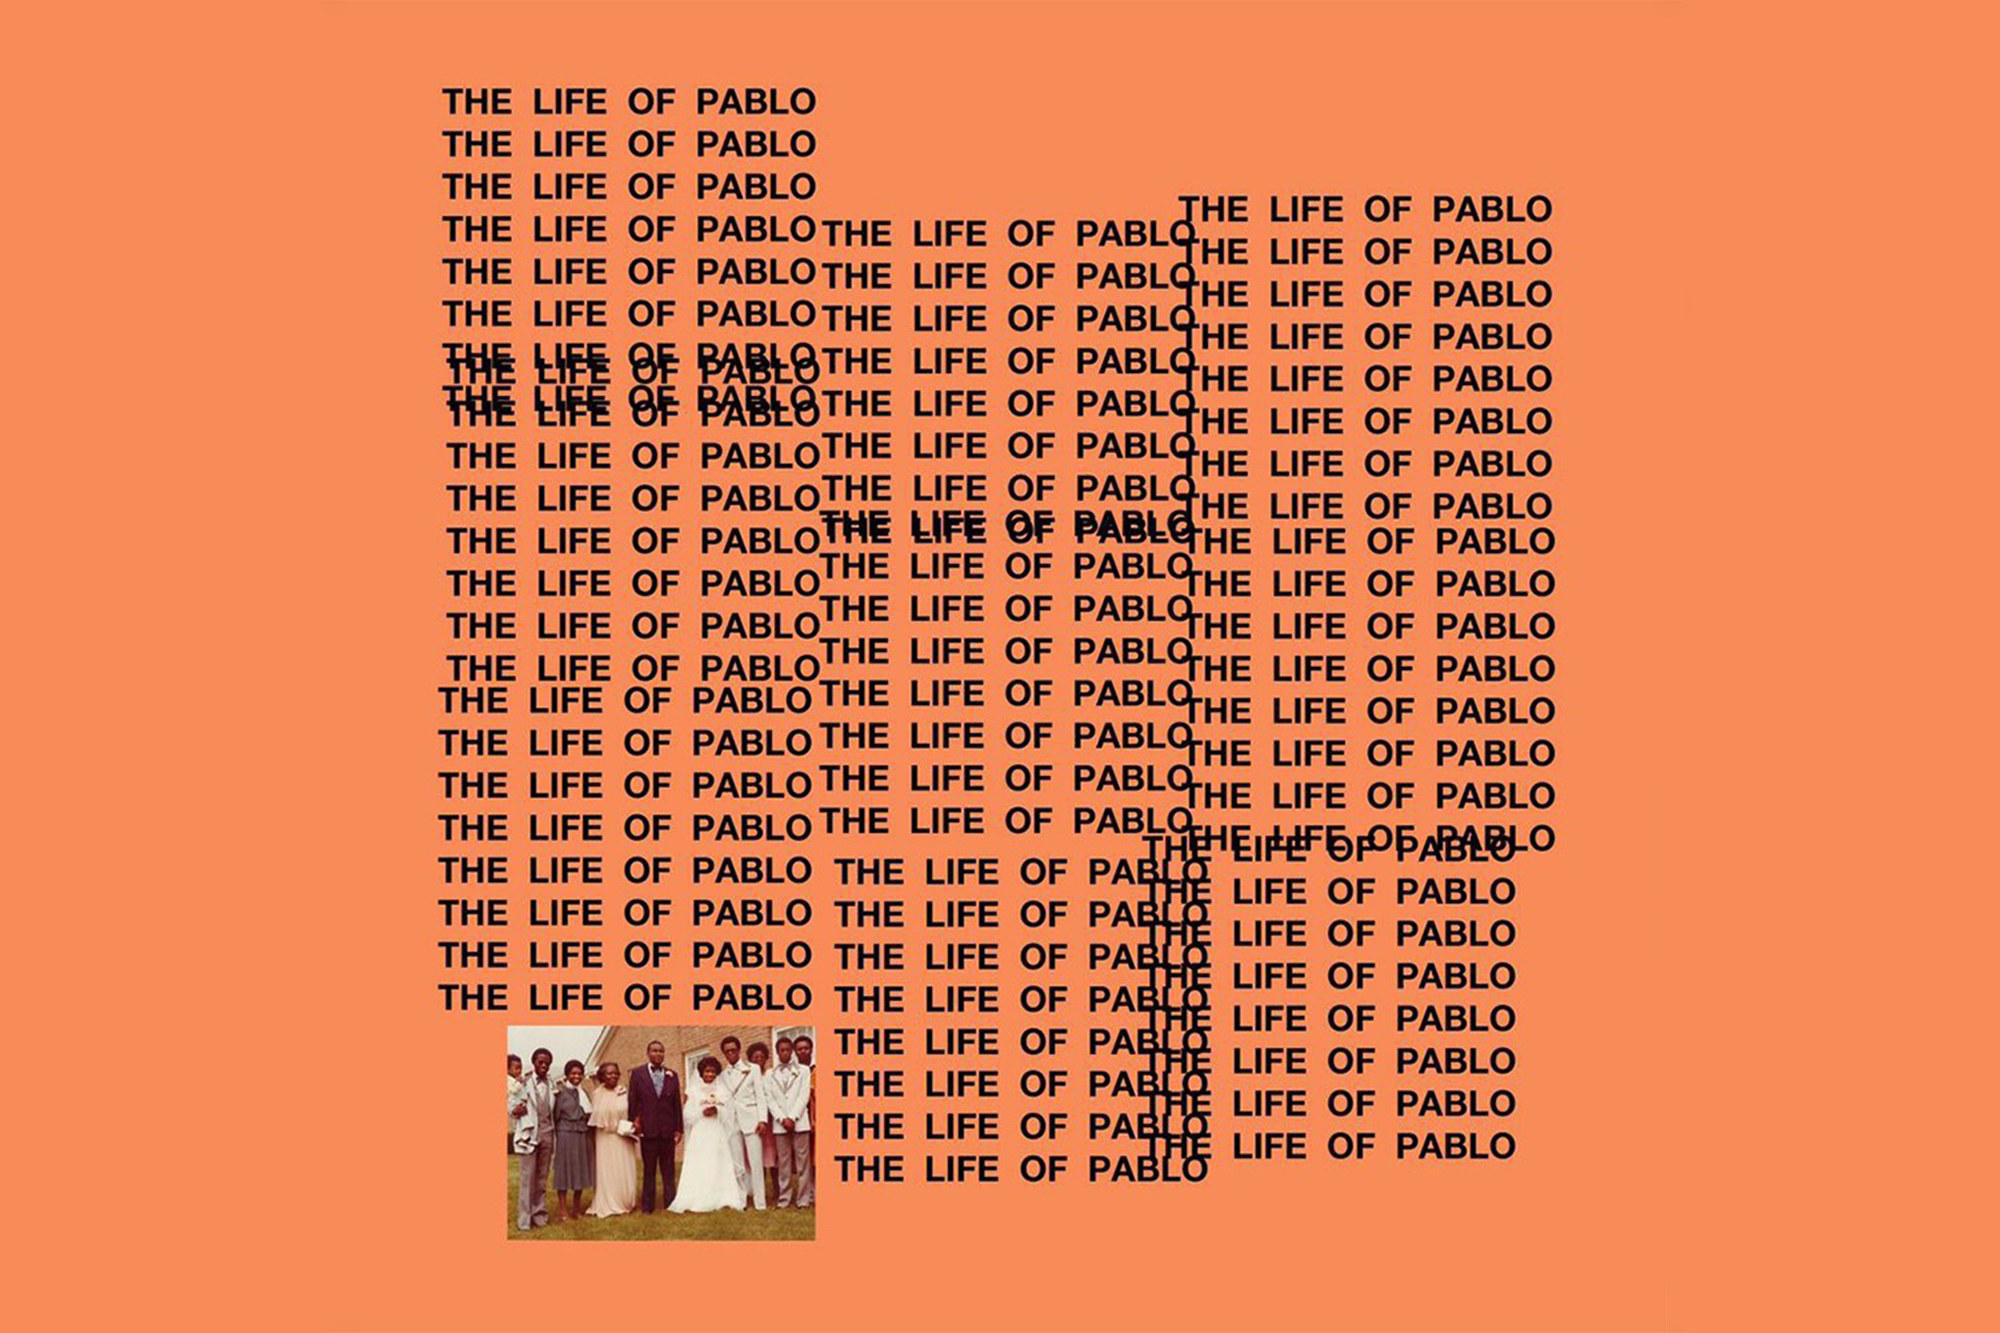 life-of-pablo-album-art